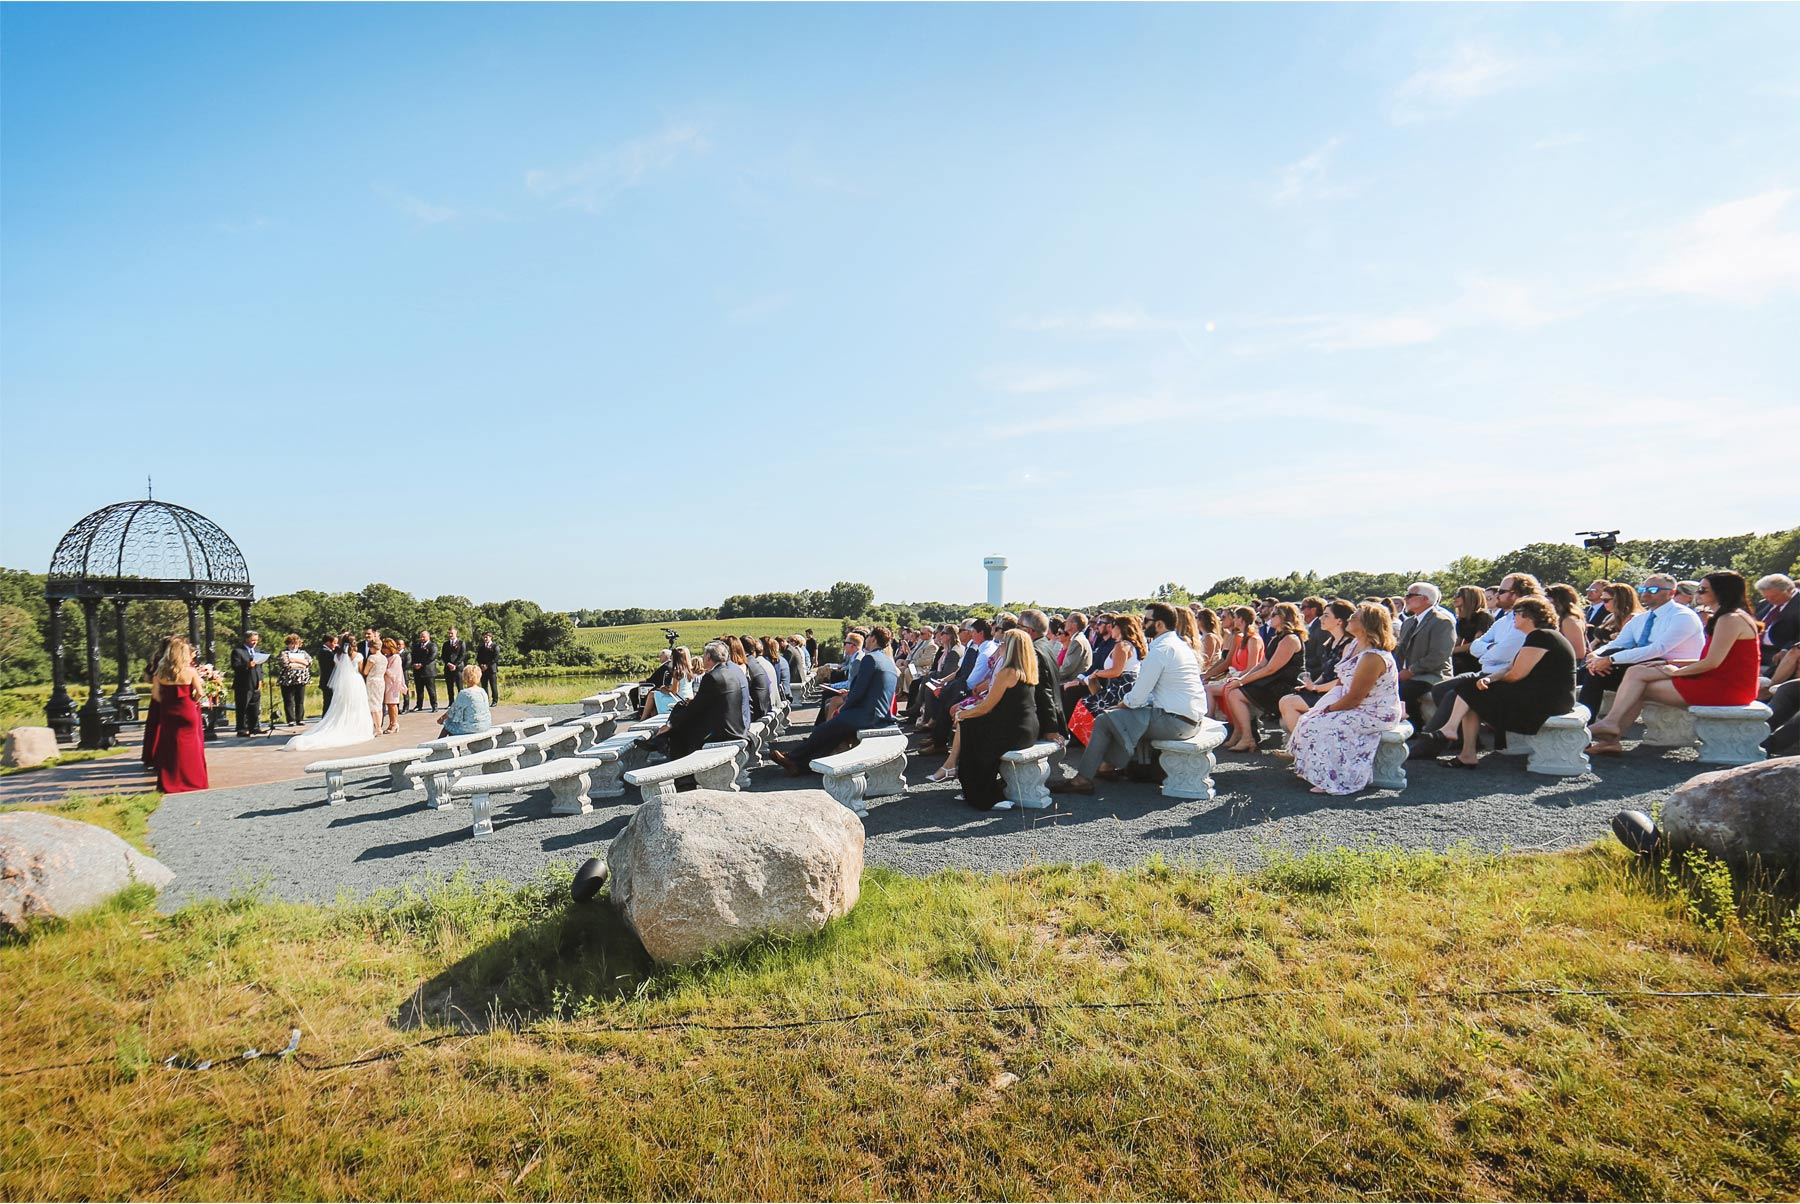 13-Weding-by-Vick-Photography-Minneapolis-Minnesota-Bavaria-Downs-Outdoor-Summer-Ceremony-Rebecca-and-Mark.jpg